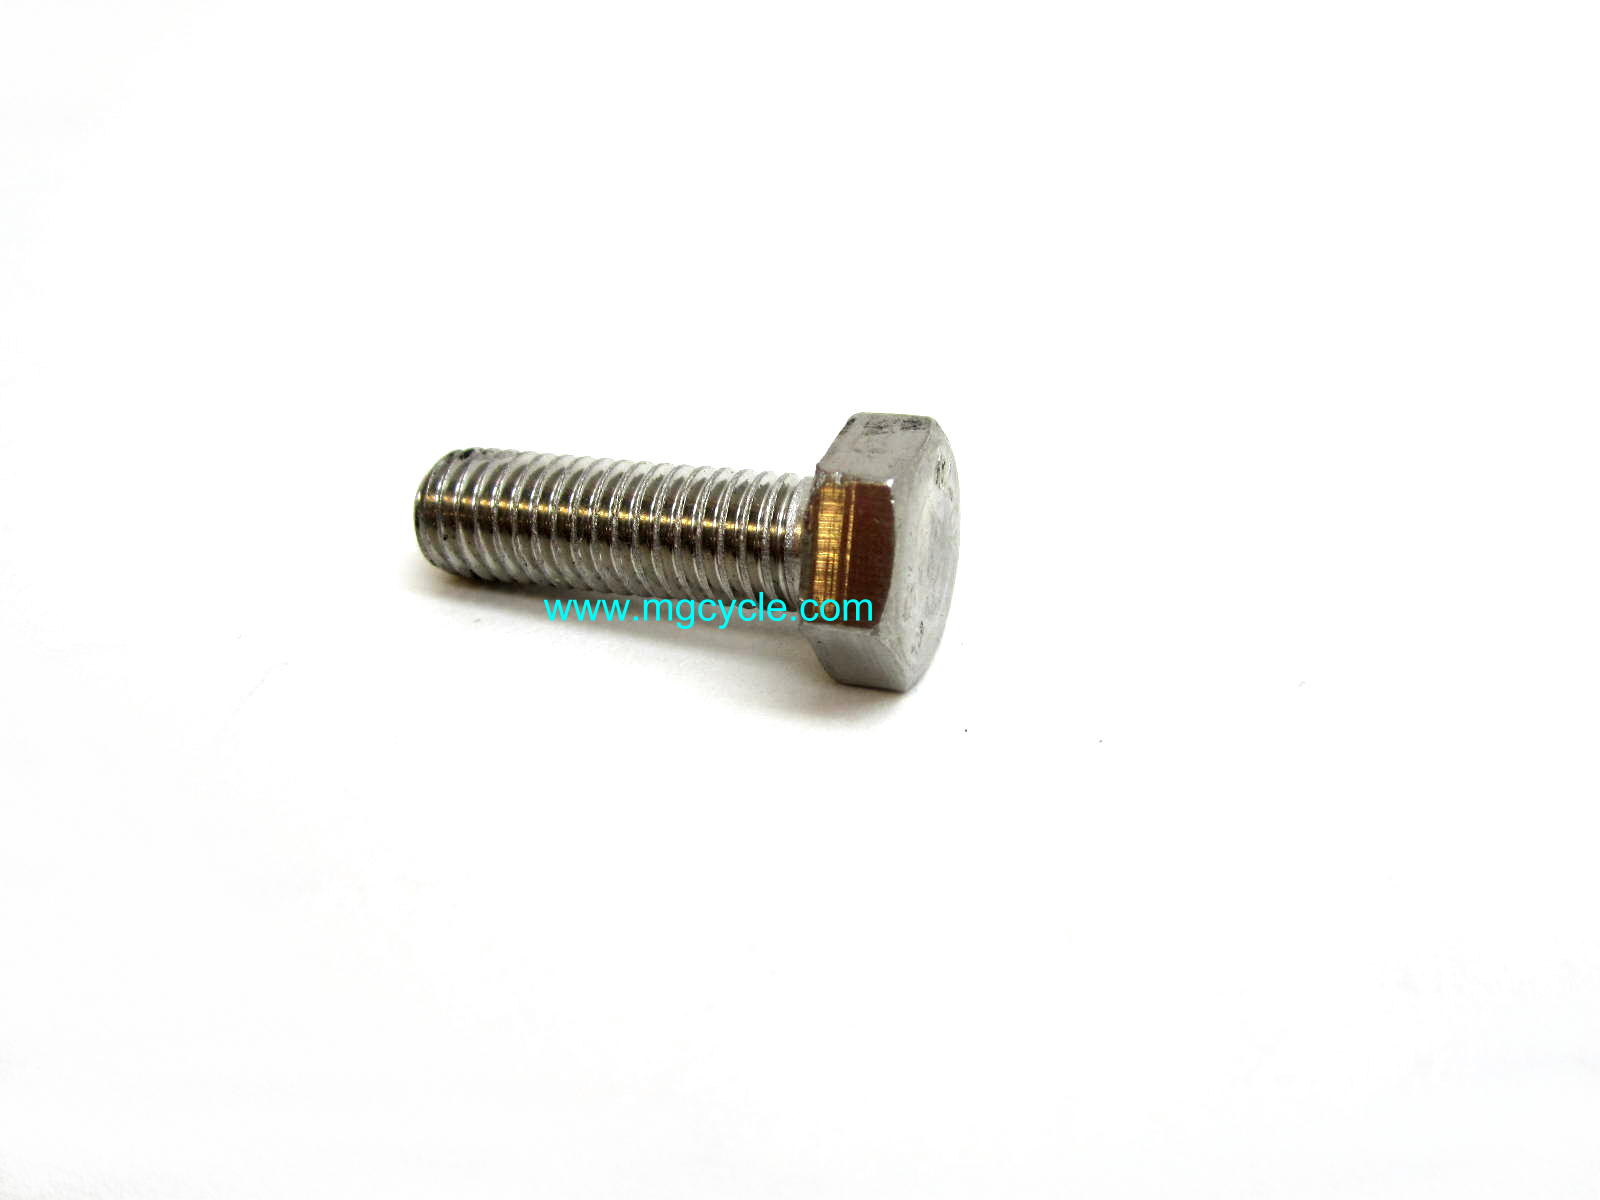 8mm stainless steel hex bolt, 25mm long